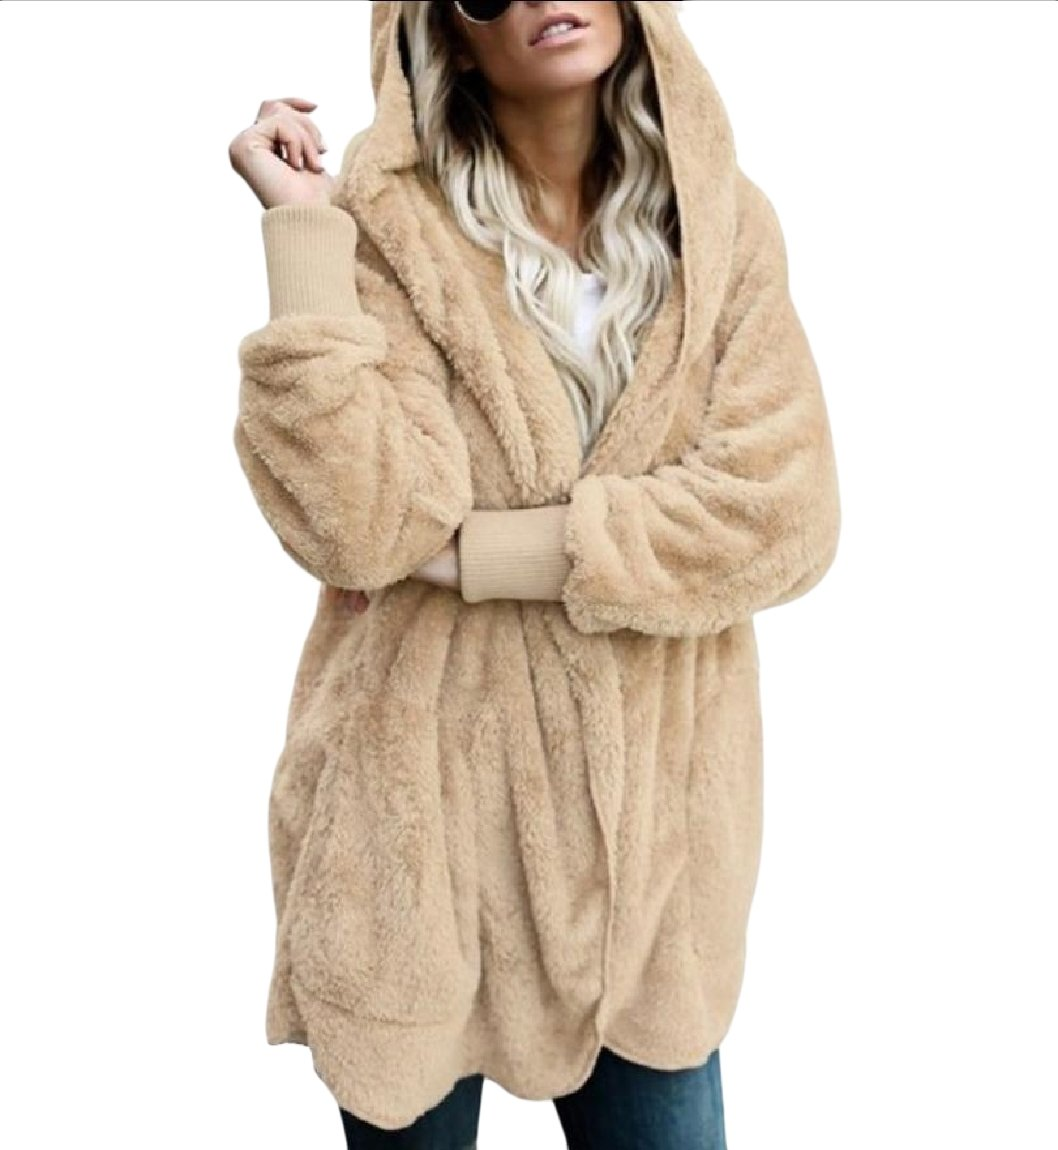 Vska Women Warm Hoode Fall Winter Plush Faux Fur Outwear Jacket